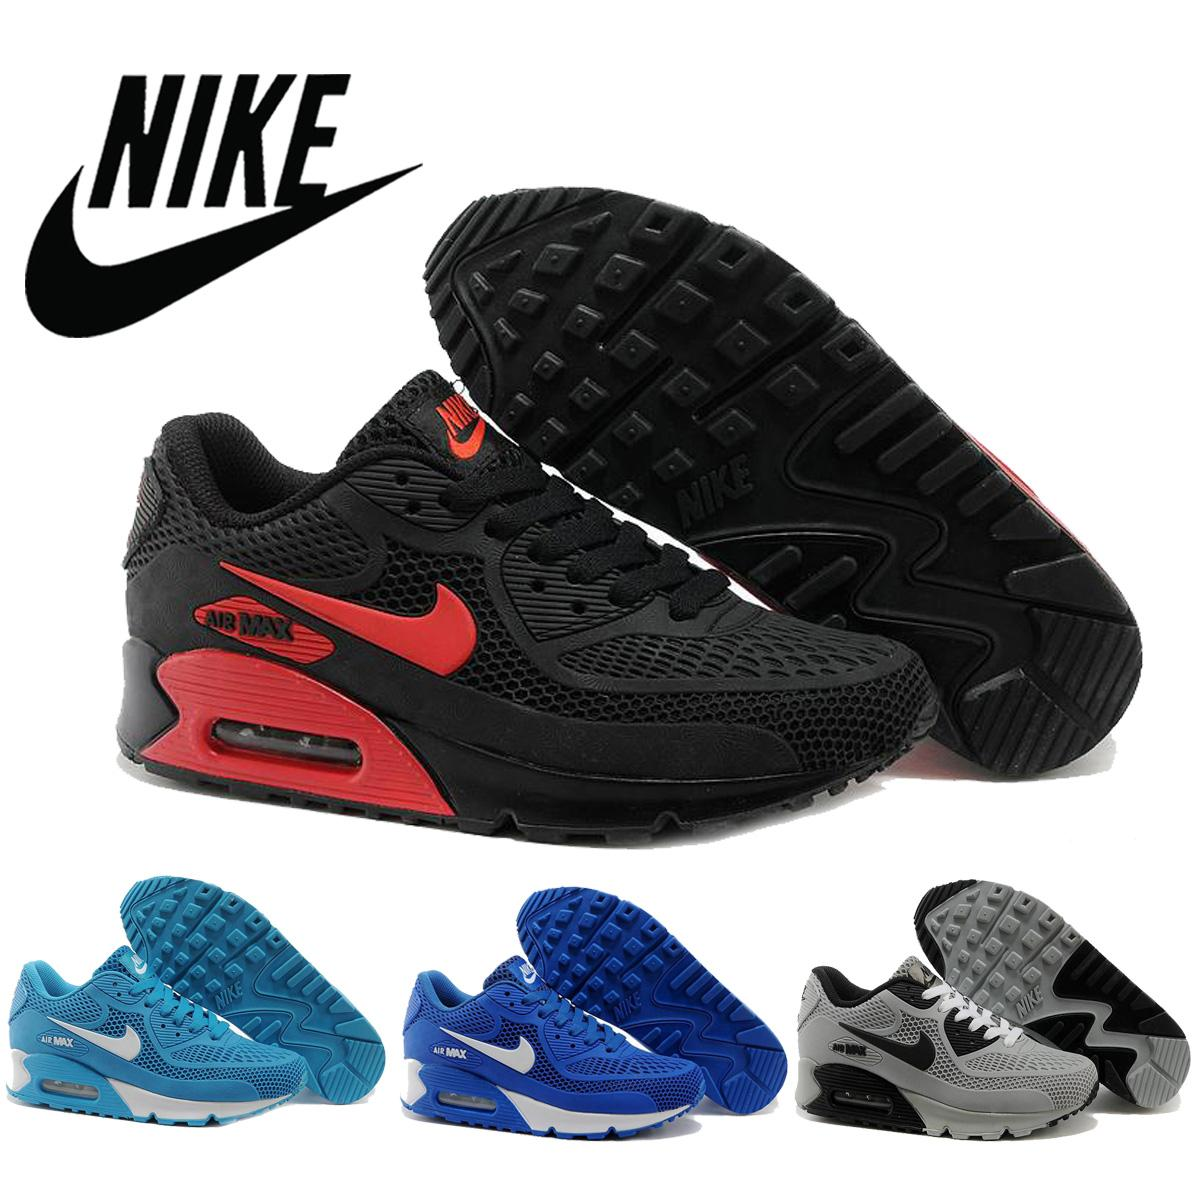 best authentic 5021c 7d933 Nike Air Max 90 KPU TPU Men S Running Shoes Air Max 90 Hyperfuse Womens  Sneakers Athletic Shoes Sports Shoes Running Shoes From Bestsportcentre, ...